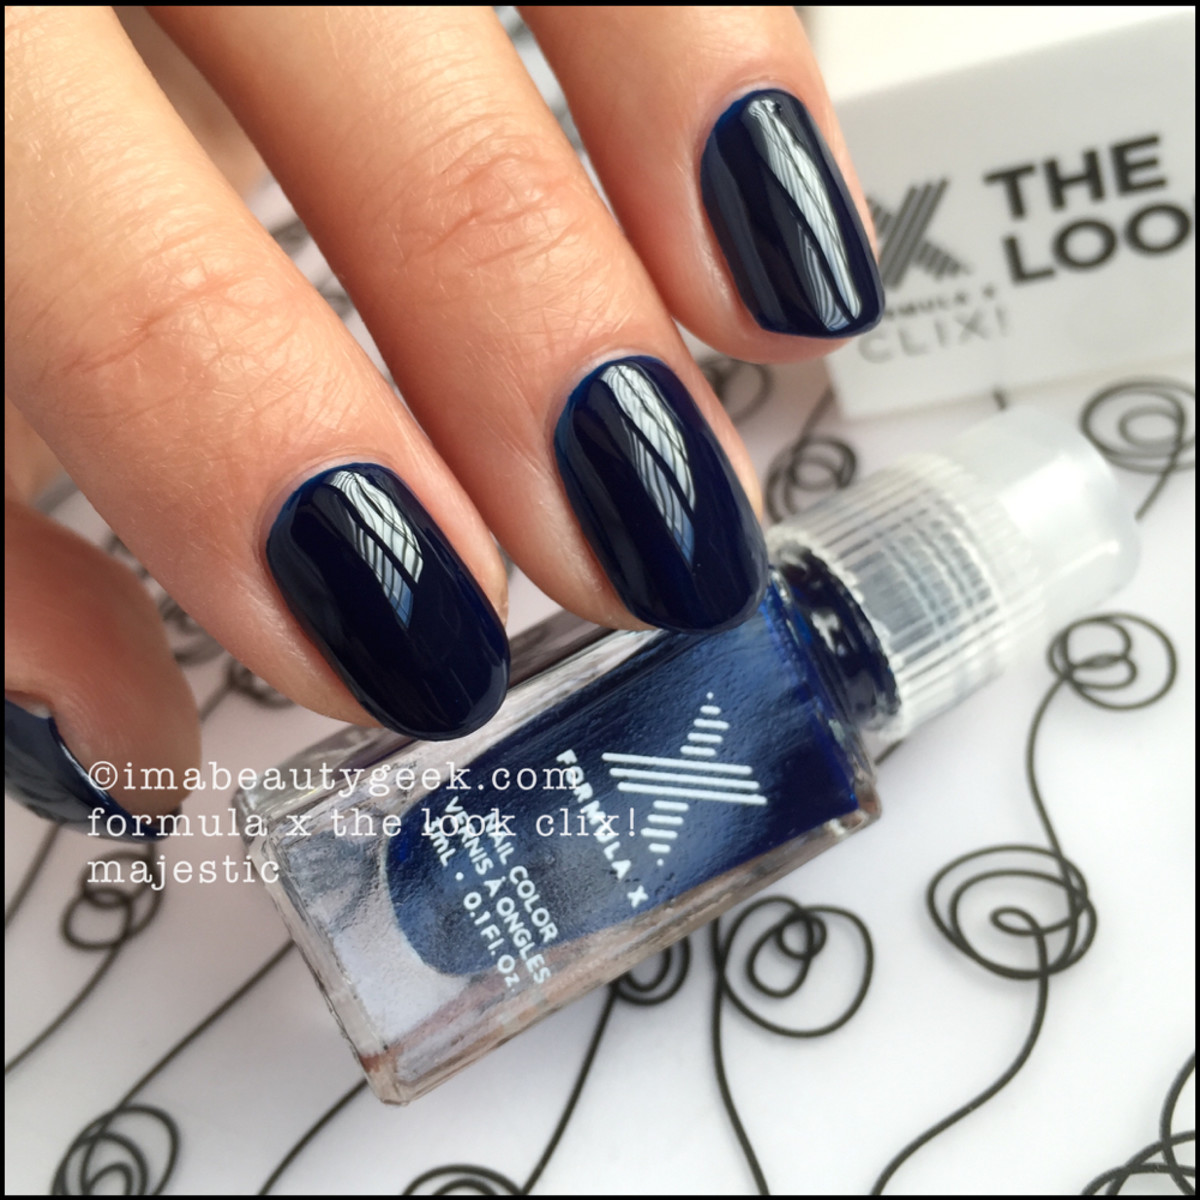 Formula X Clix 2015 Majestic and Over The Moon The Look Nail